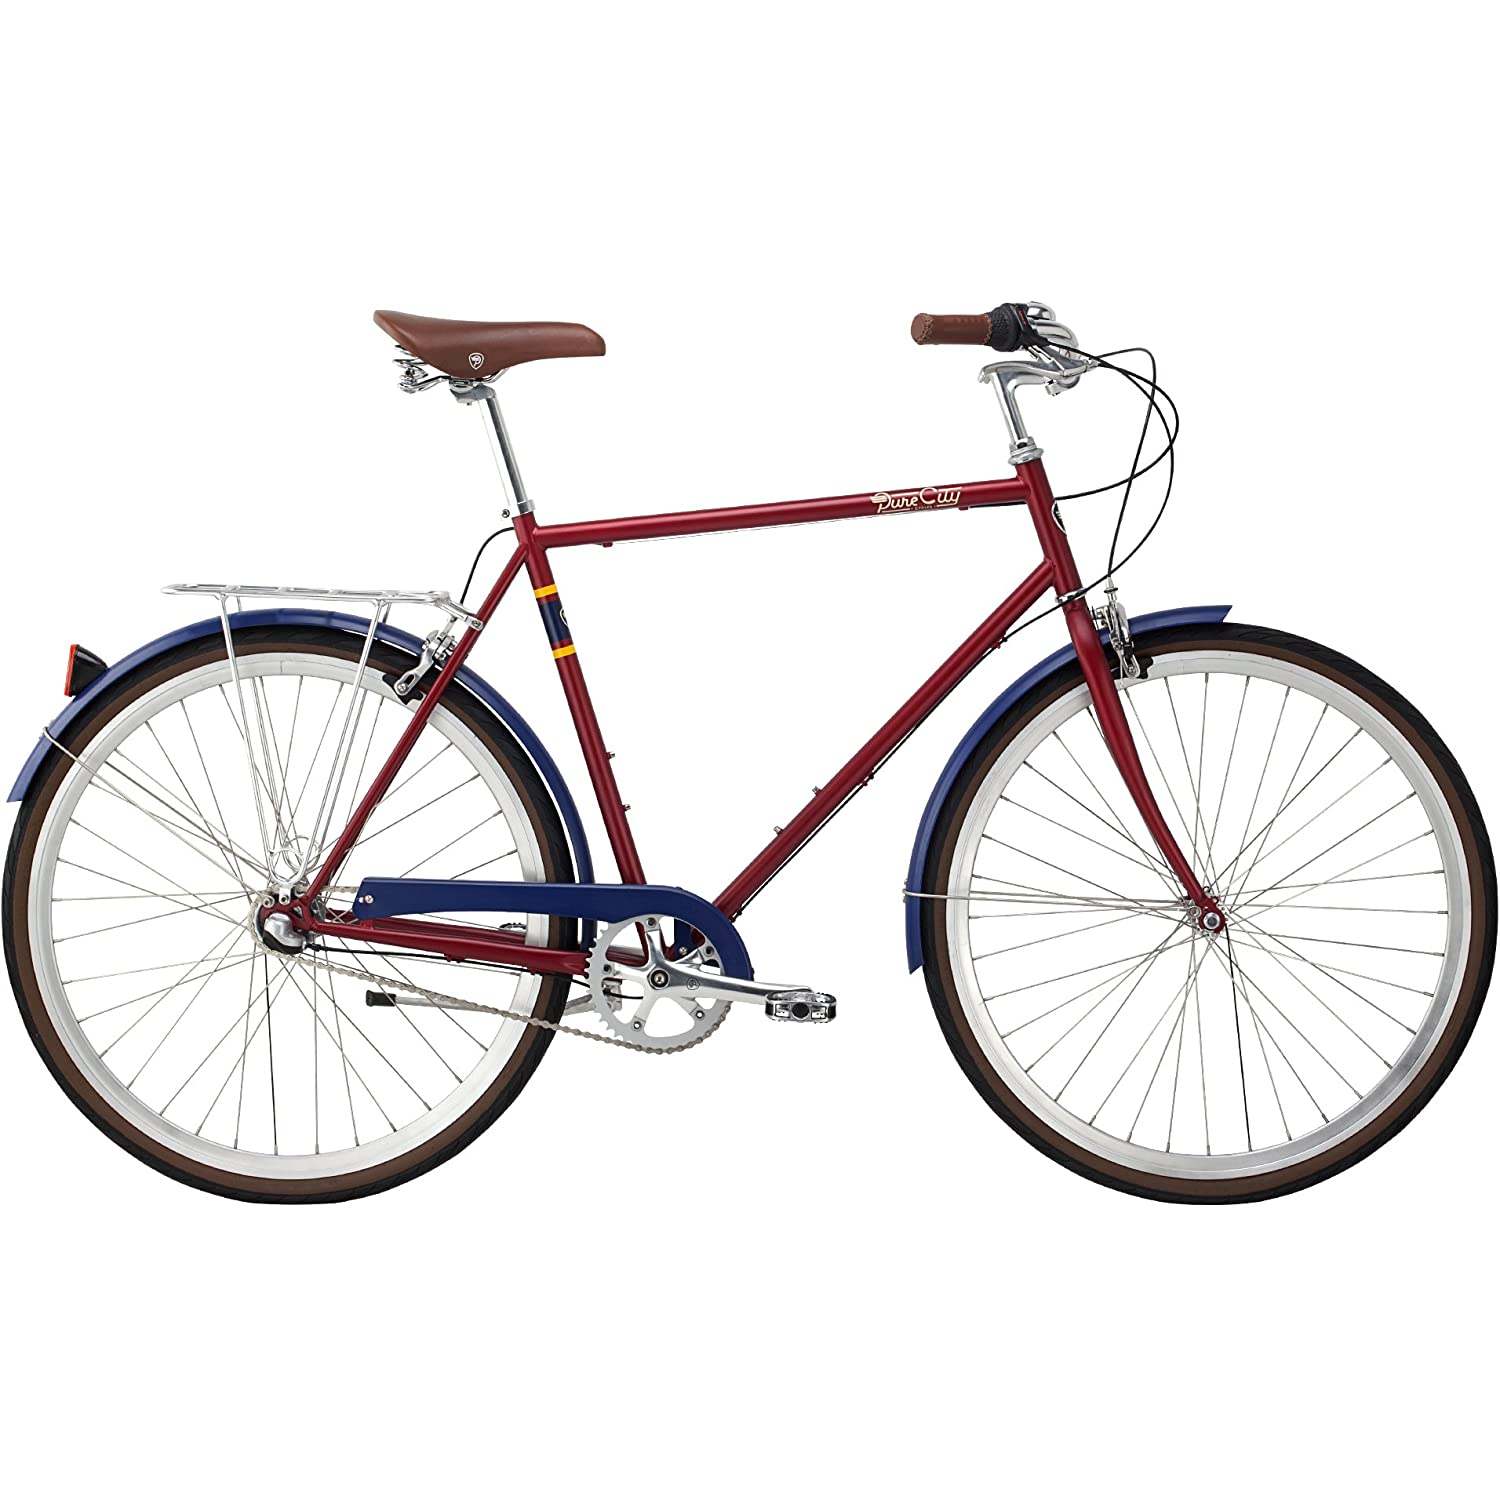 Amazon.com : Pure City Classic Diamond Frame Bicycle : Sports & Outdoors